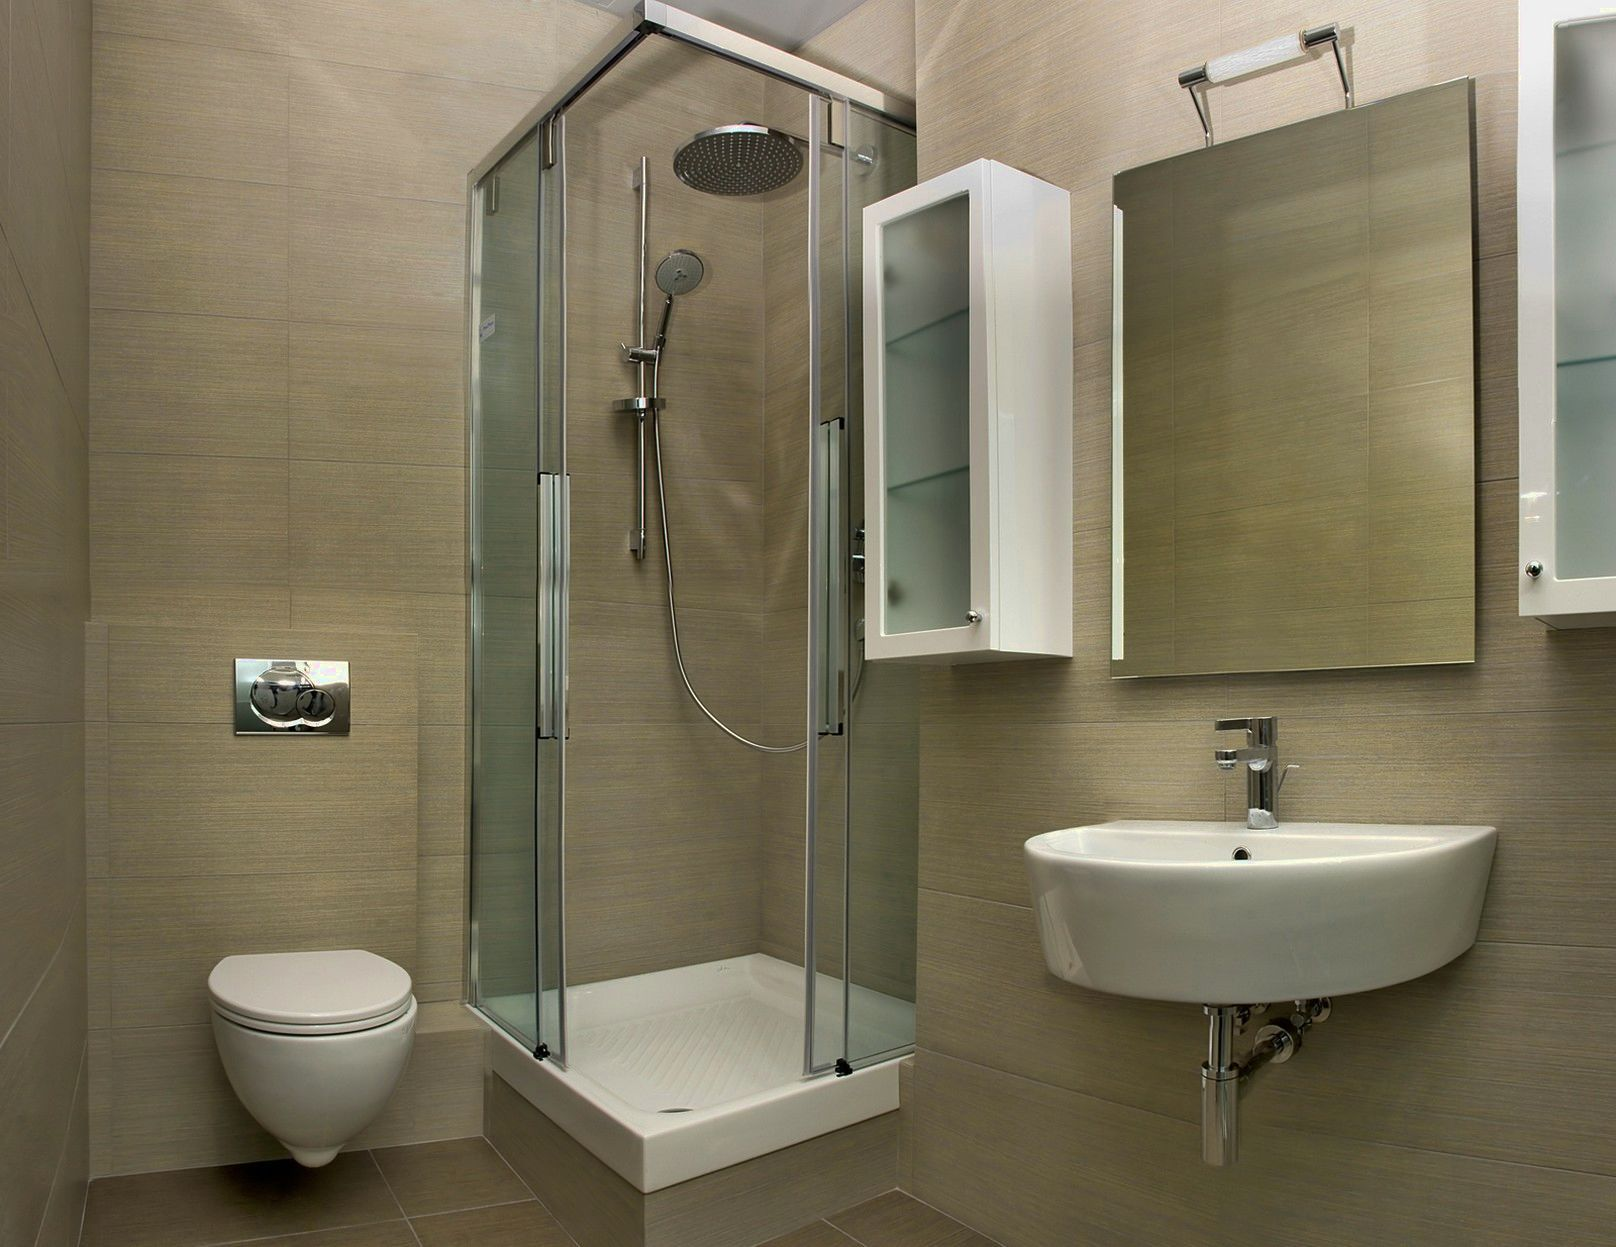 Showers For Small Spaces small spaces bathroom ideas amazing bathroom decoration - http